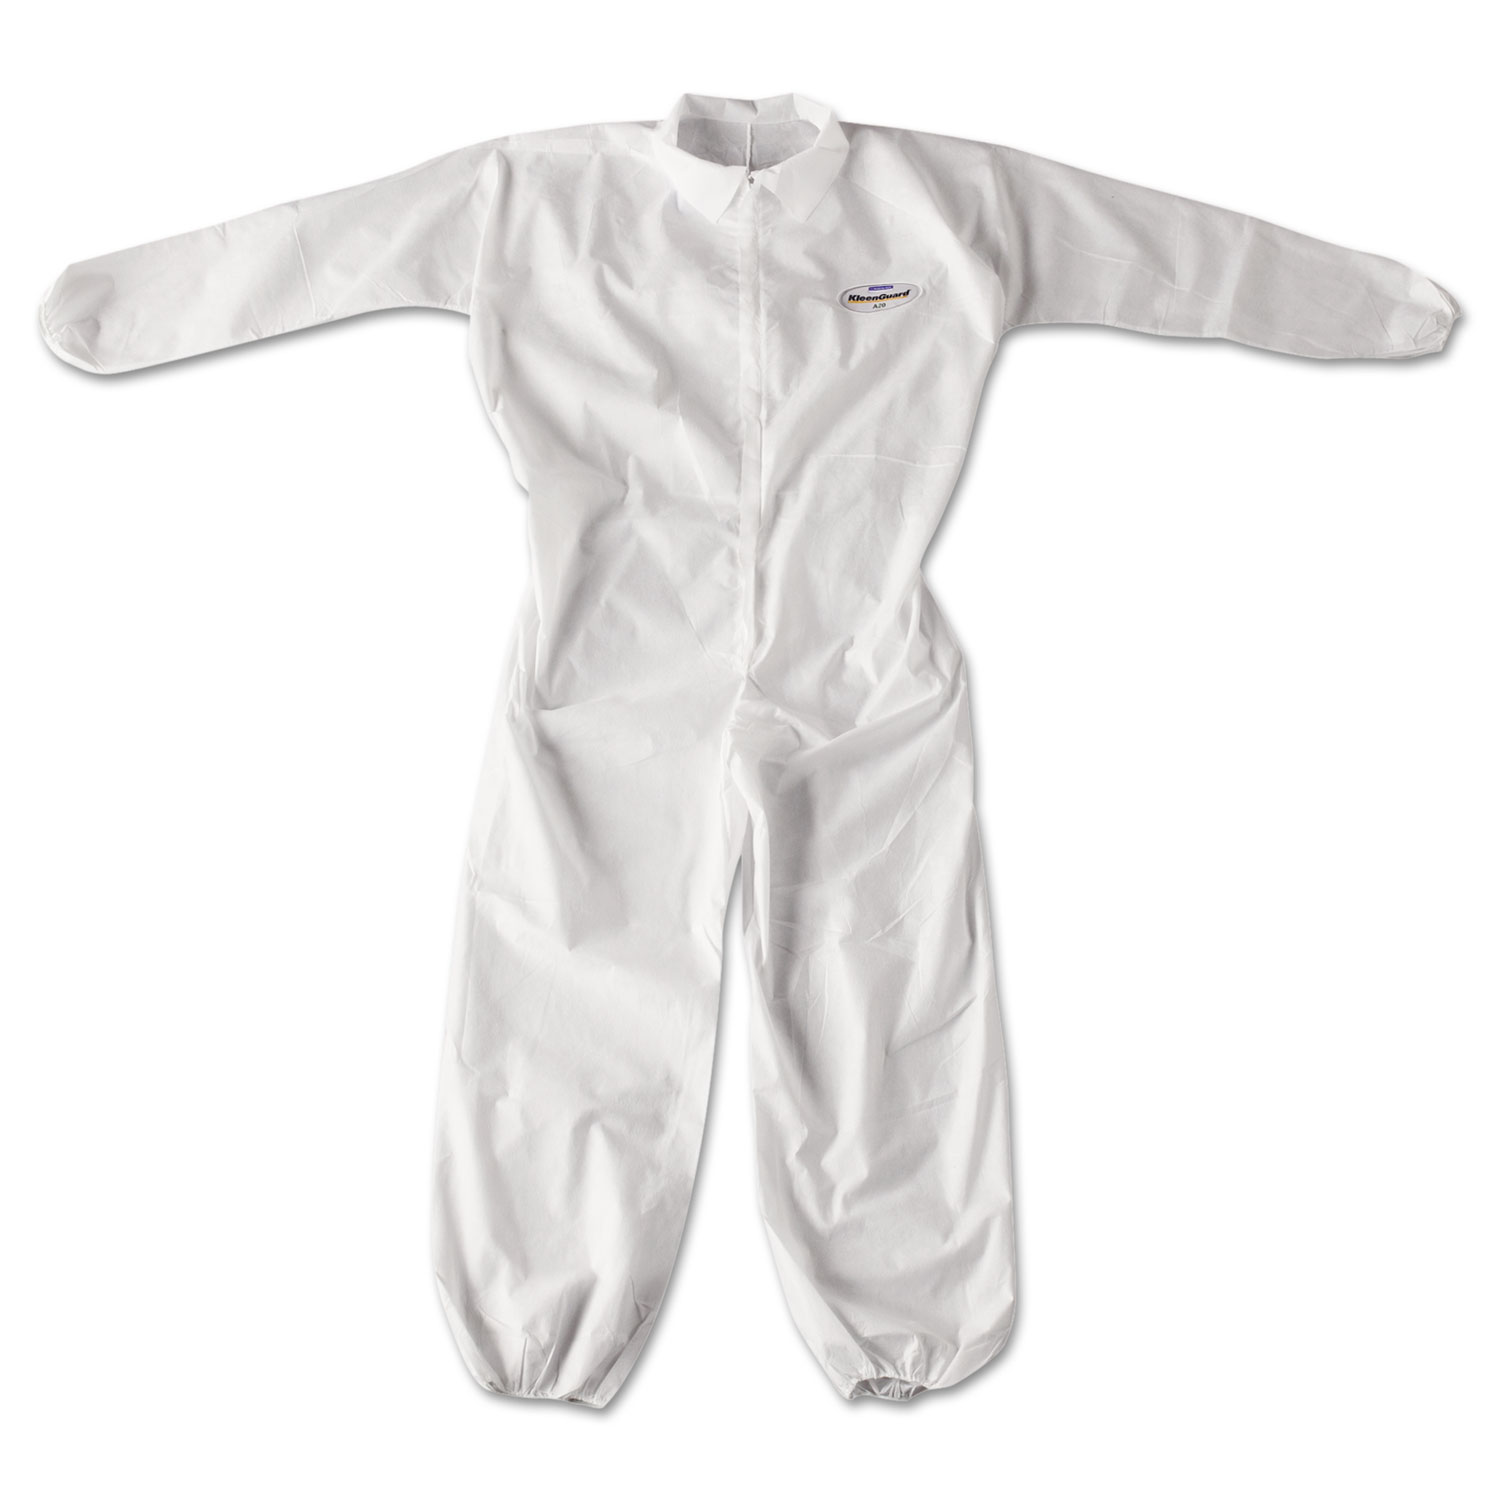 KleenGuard* A20 Breathable Particle Protection Coveralls, Zip Closure, XL, White